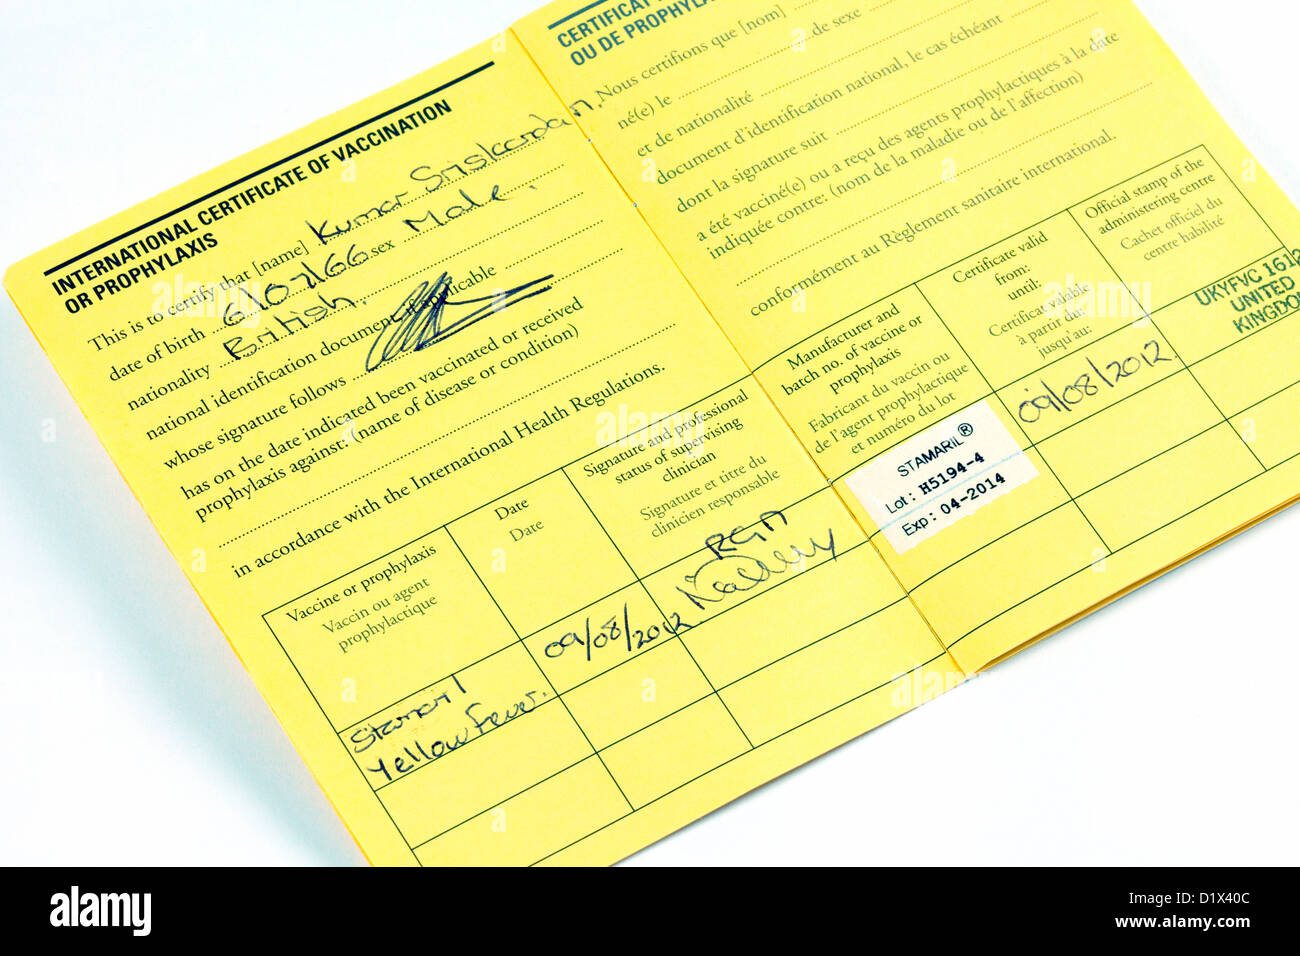 Certificat de vaccination contre la fièvre jaune, UK Photo Stock